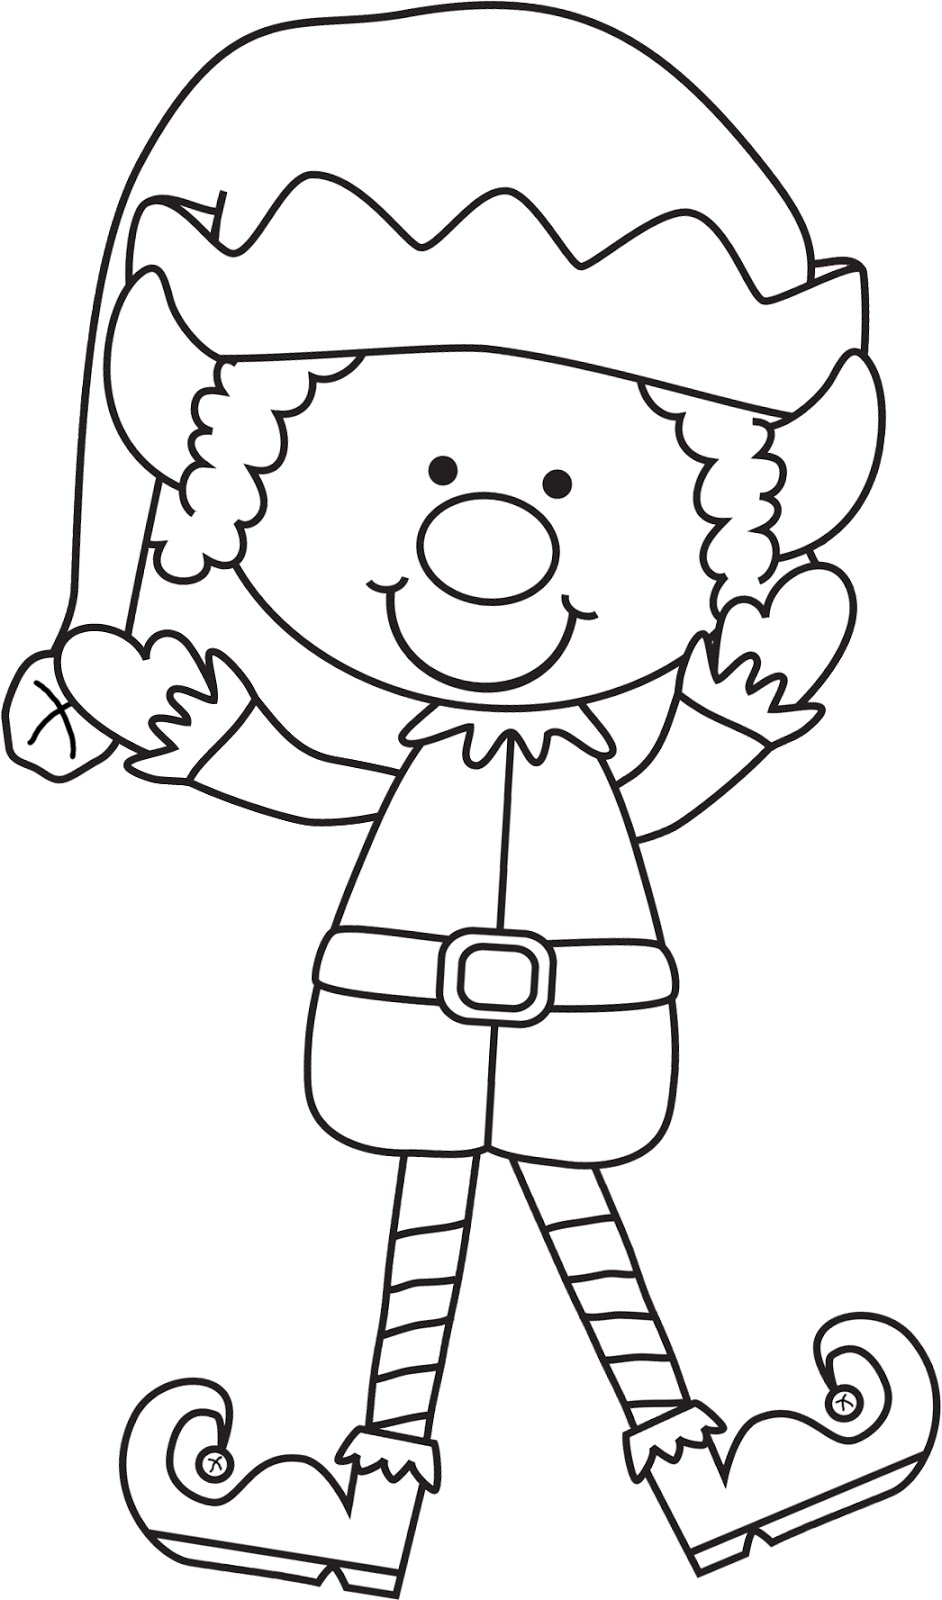 Christmas Elf Coloring Pages Christmas Elf Coloring Pages Coloringrocks